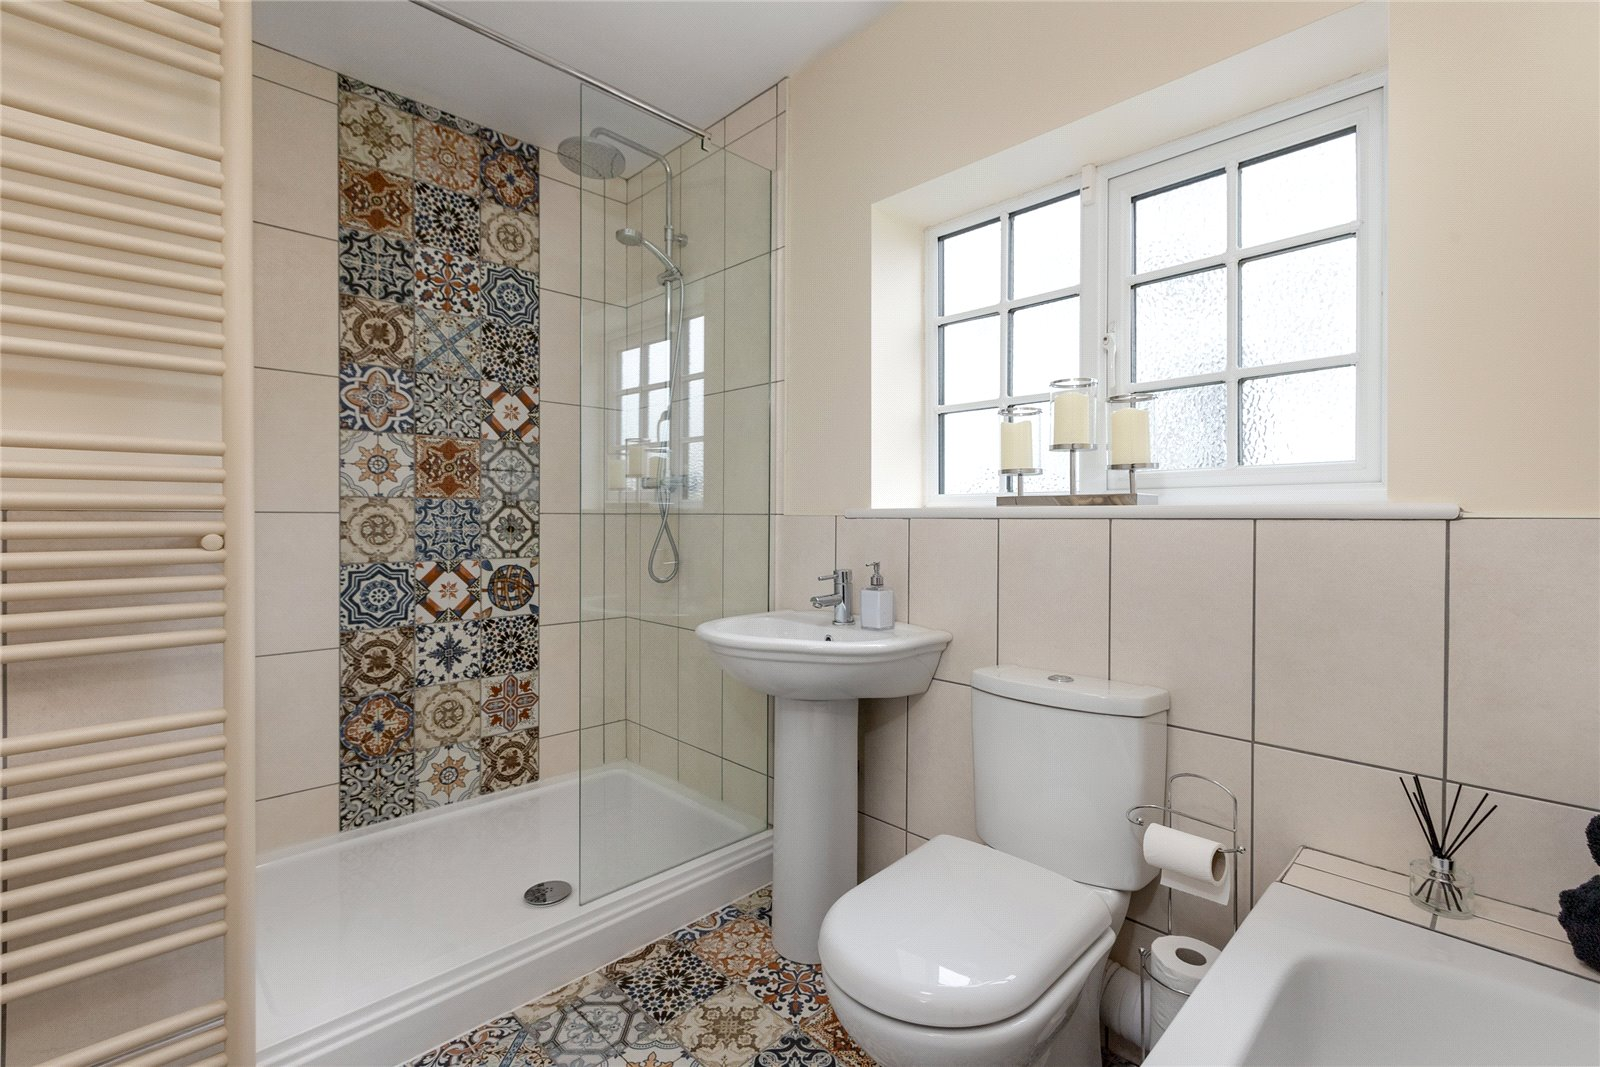 6 bed house for sale in Ladgate Lane, Middlesbrough  - Property Image 19